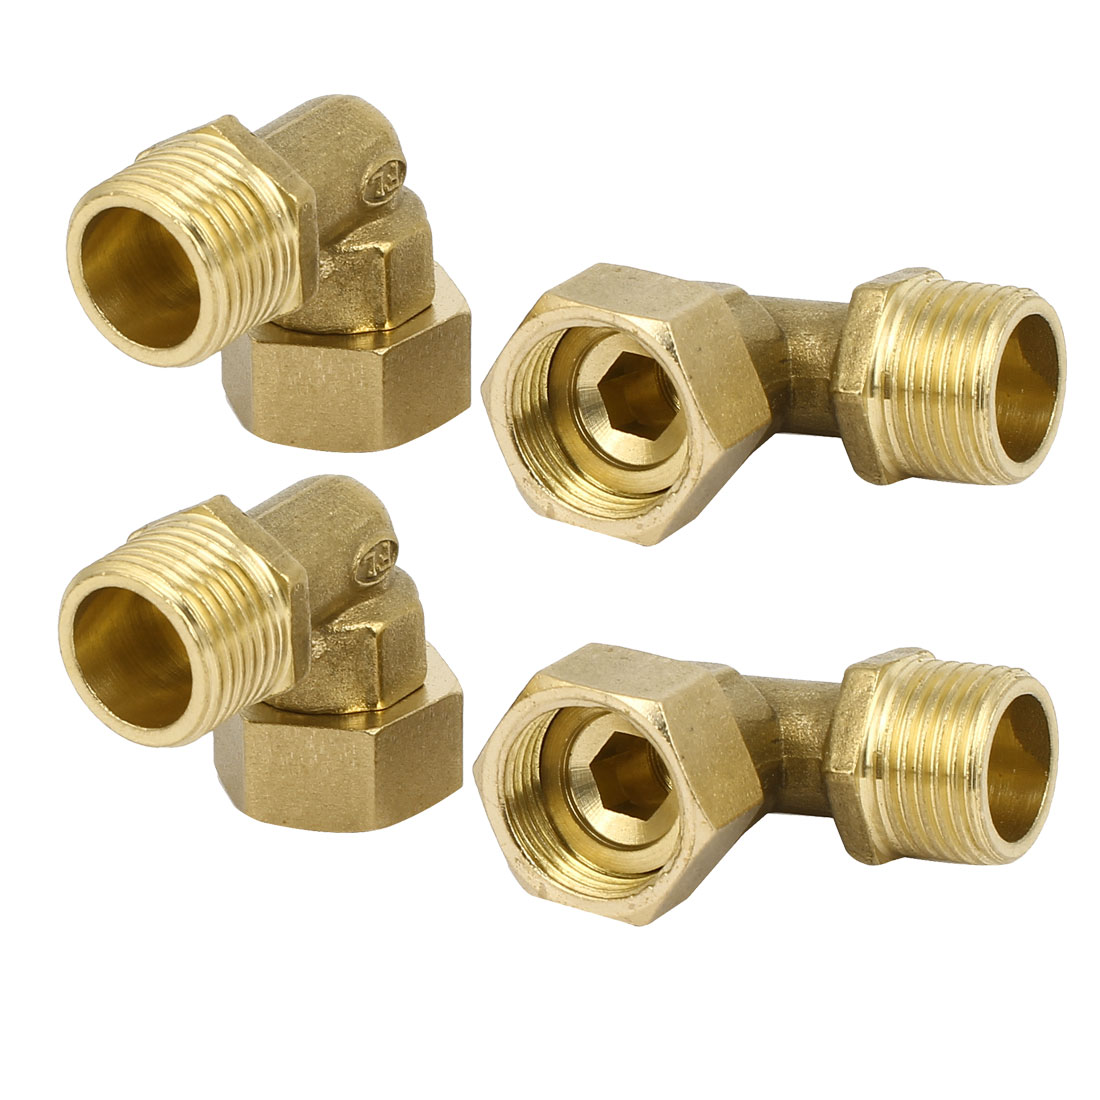 20mm Dia Male Thread Brass 90 Degree Elbow Tube Pipe Fittings Connector 4pcs